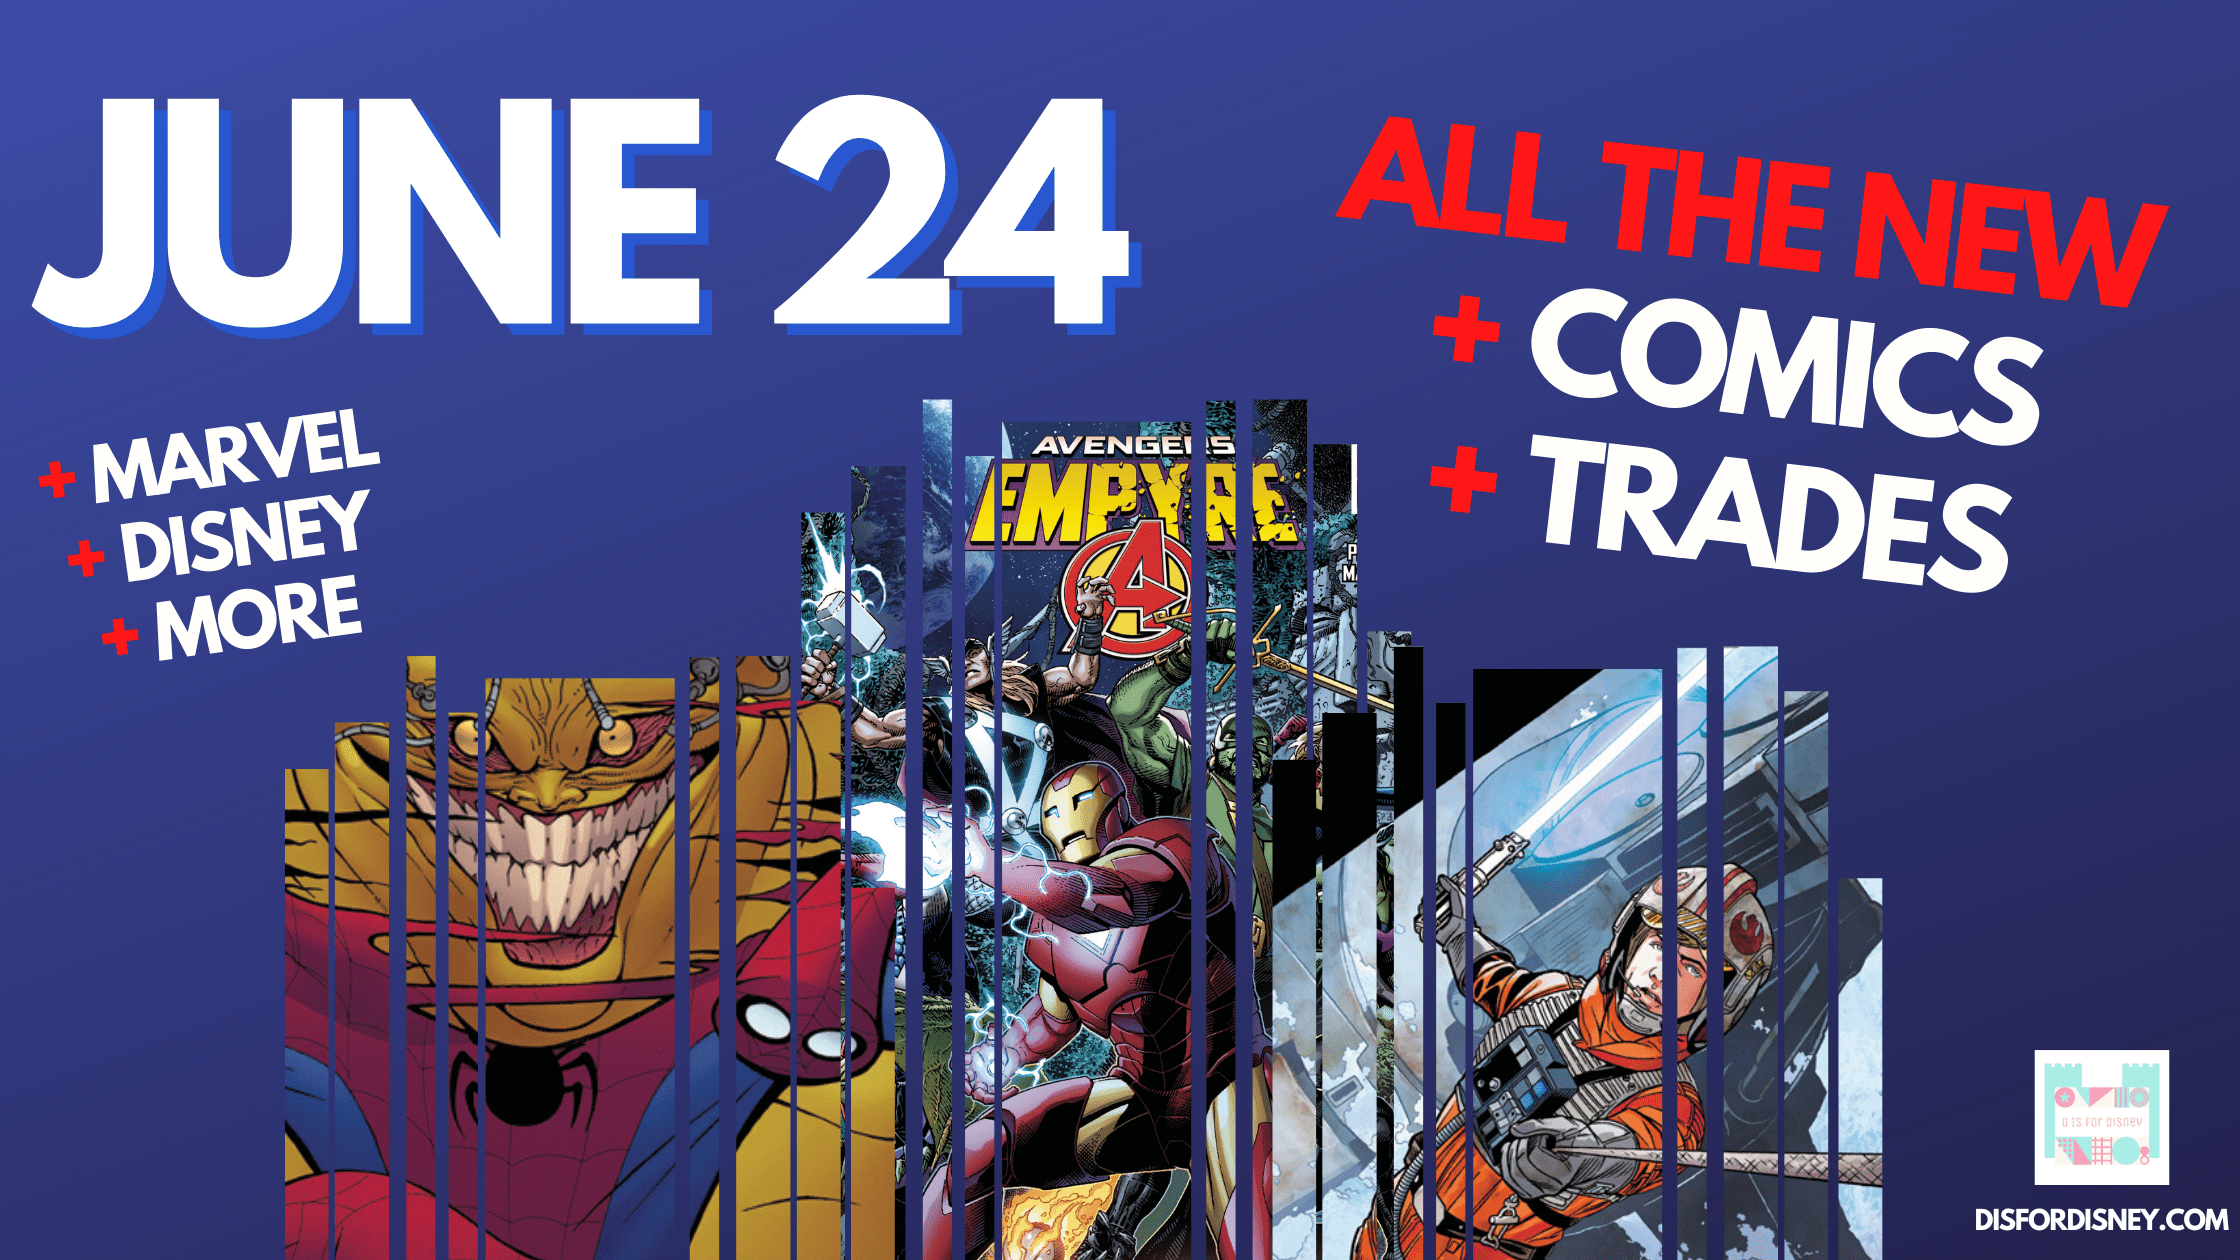 All the New Marvel and Disney Comics Coming Out June 24